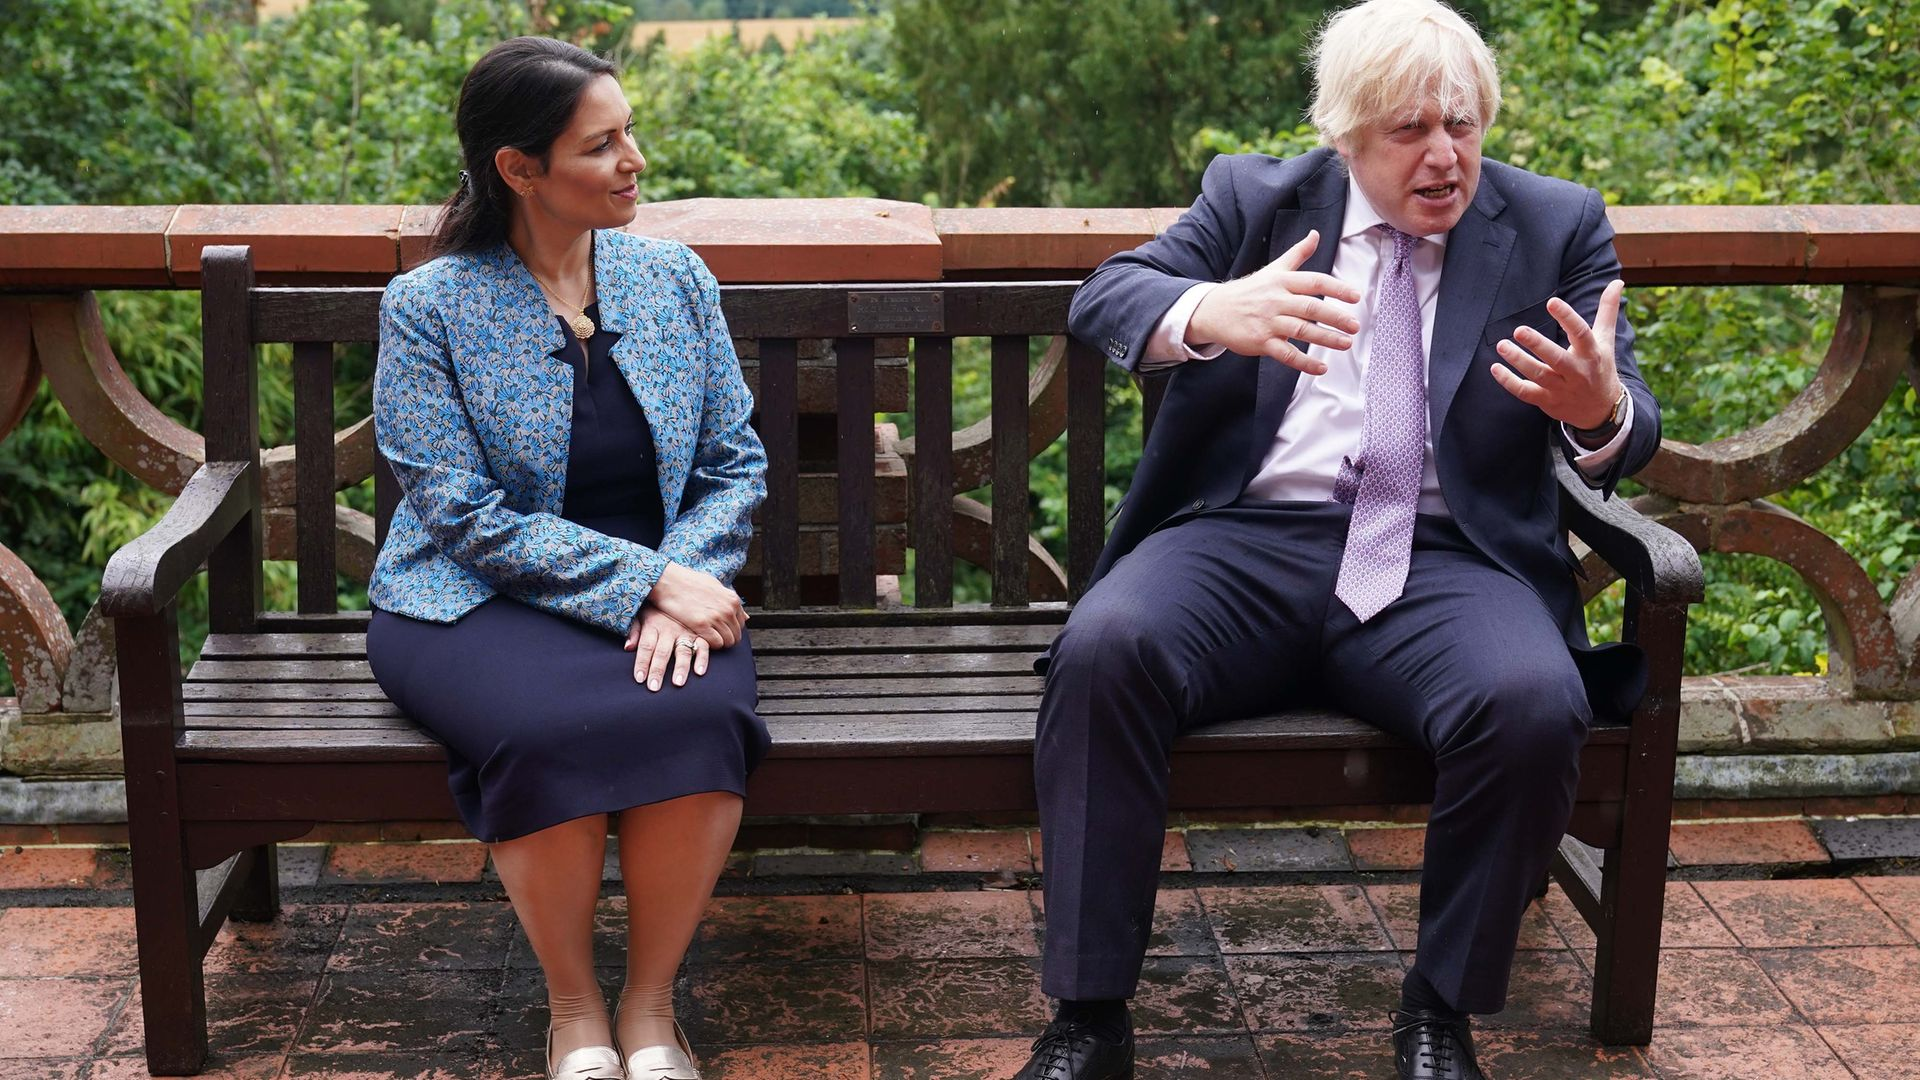 Priti Patel and Boris Johnson - both of whom have been criticised for their use of statistics - on a trip to Surrey Police HQ in July to talk about policing. Government claims over police numbers are among the numbers criticised